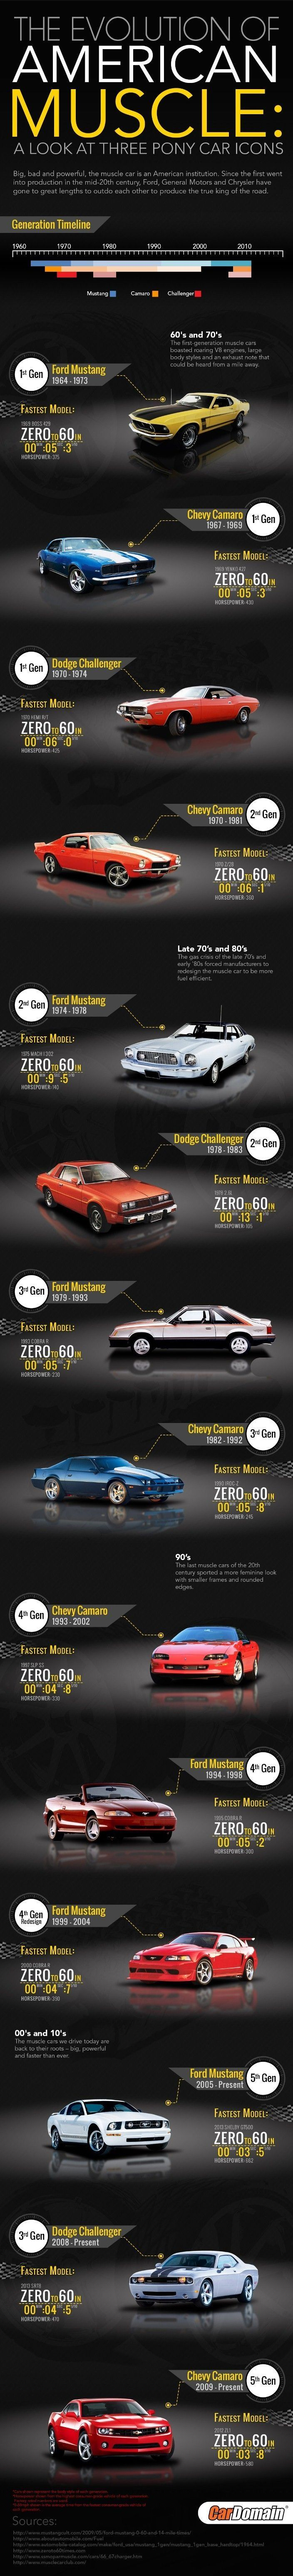 The Evolution of the American Muscle Car: Ford, General Motors, and Chrysler have gone to great lengths to outdo each other to produce the true king of the road.  Timeline of the Mustang, Camaro, & Challenger.  Automotive Service Garage Sarasota FL  - Info-graphic from http://visual.ly/evolution-american-muscle-look-three-pony-car-icons